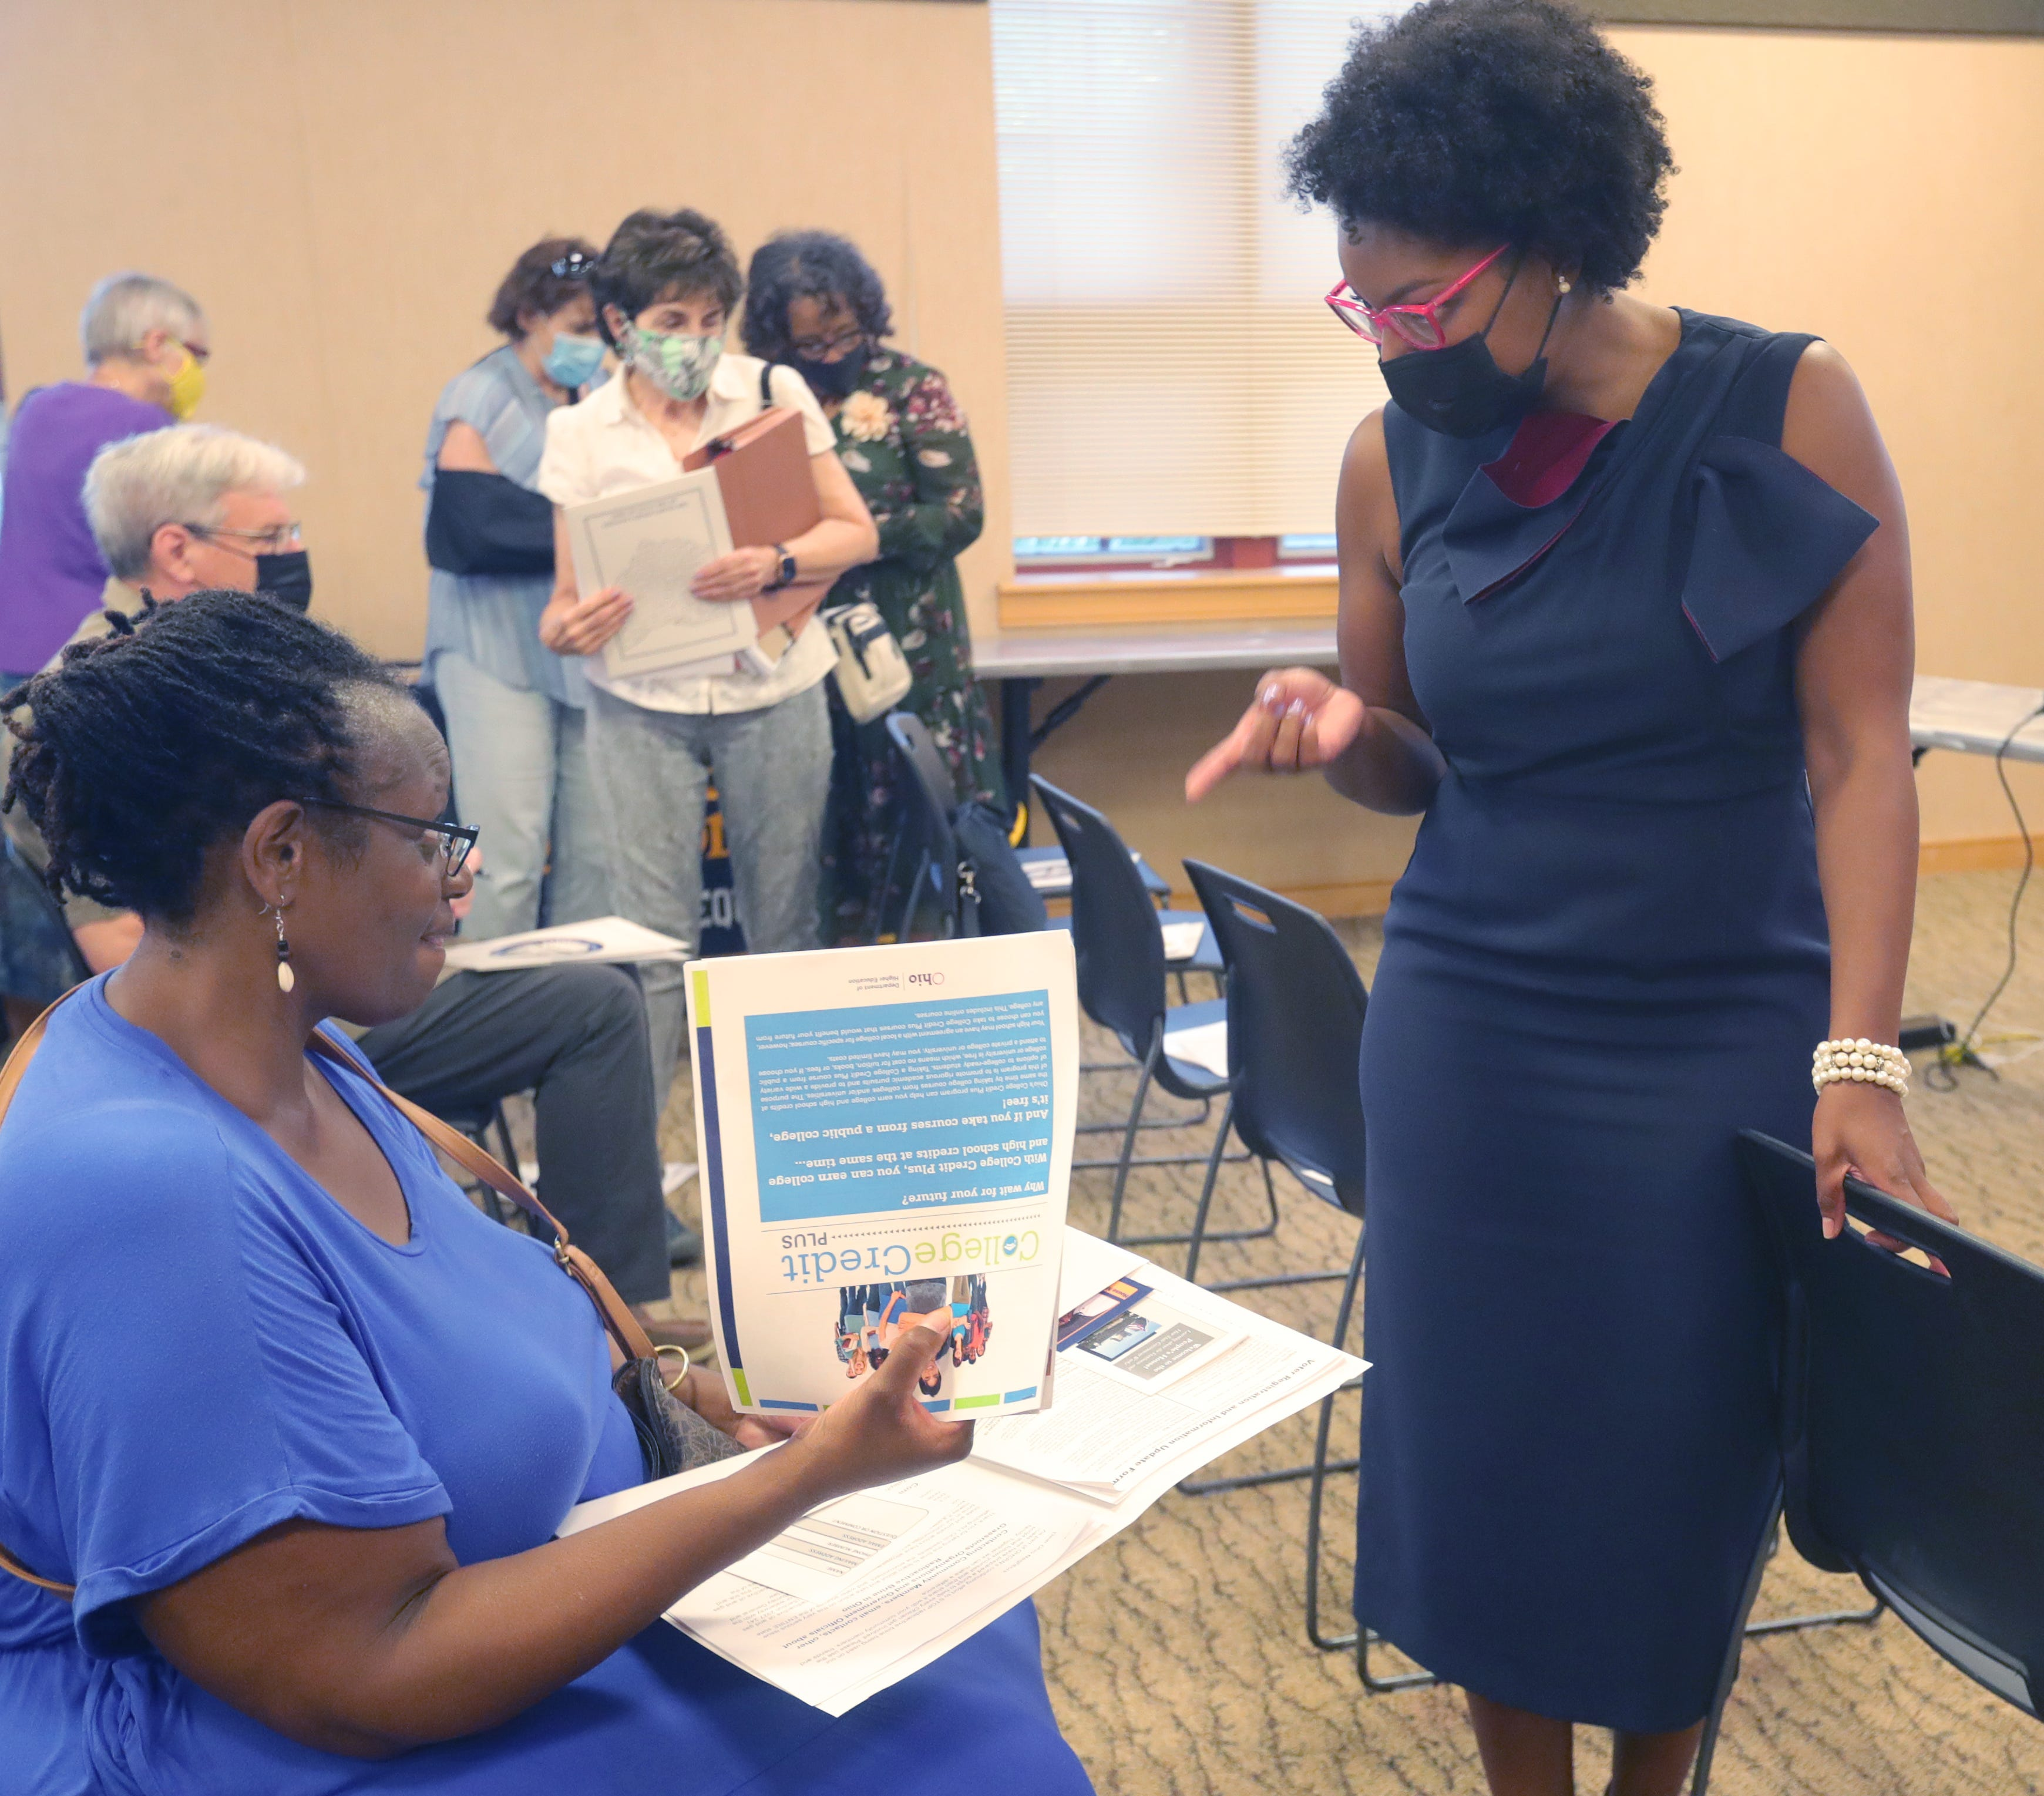 Emilia Sykes, right, talks with Tonya King before a town hall meeting Aug. 23 at the Maple Valley Library in Akron.